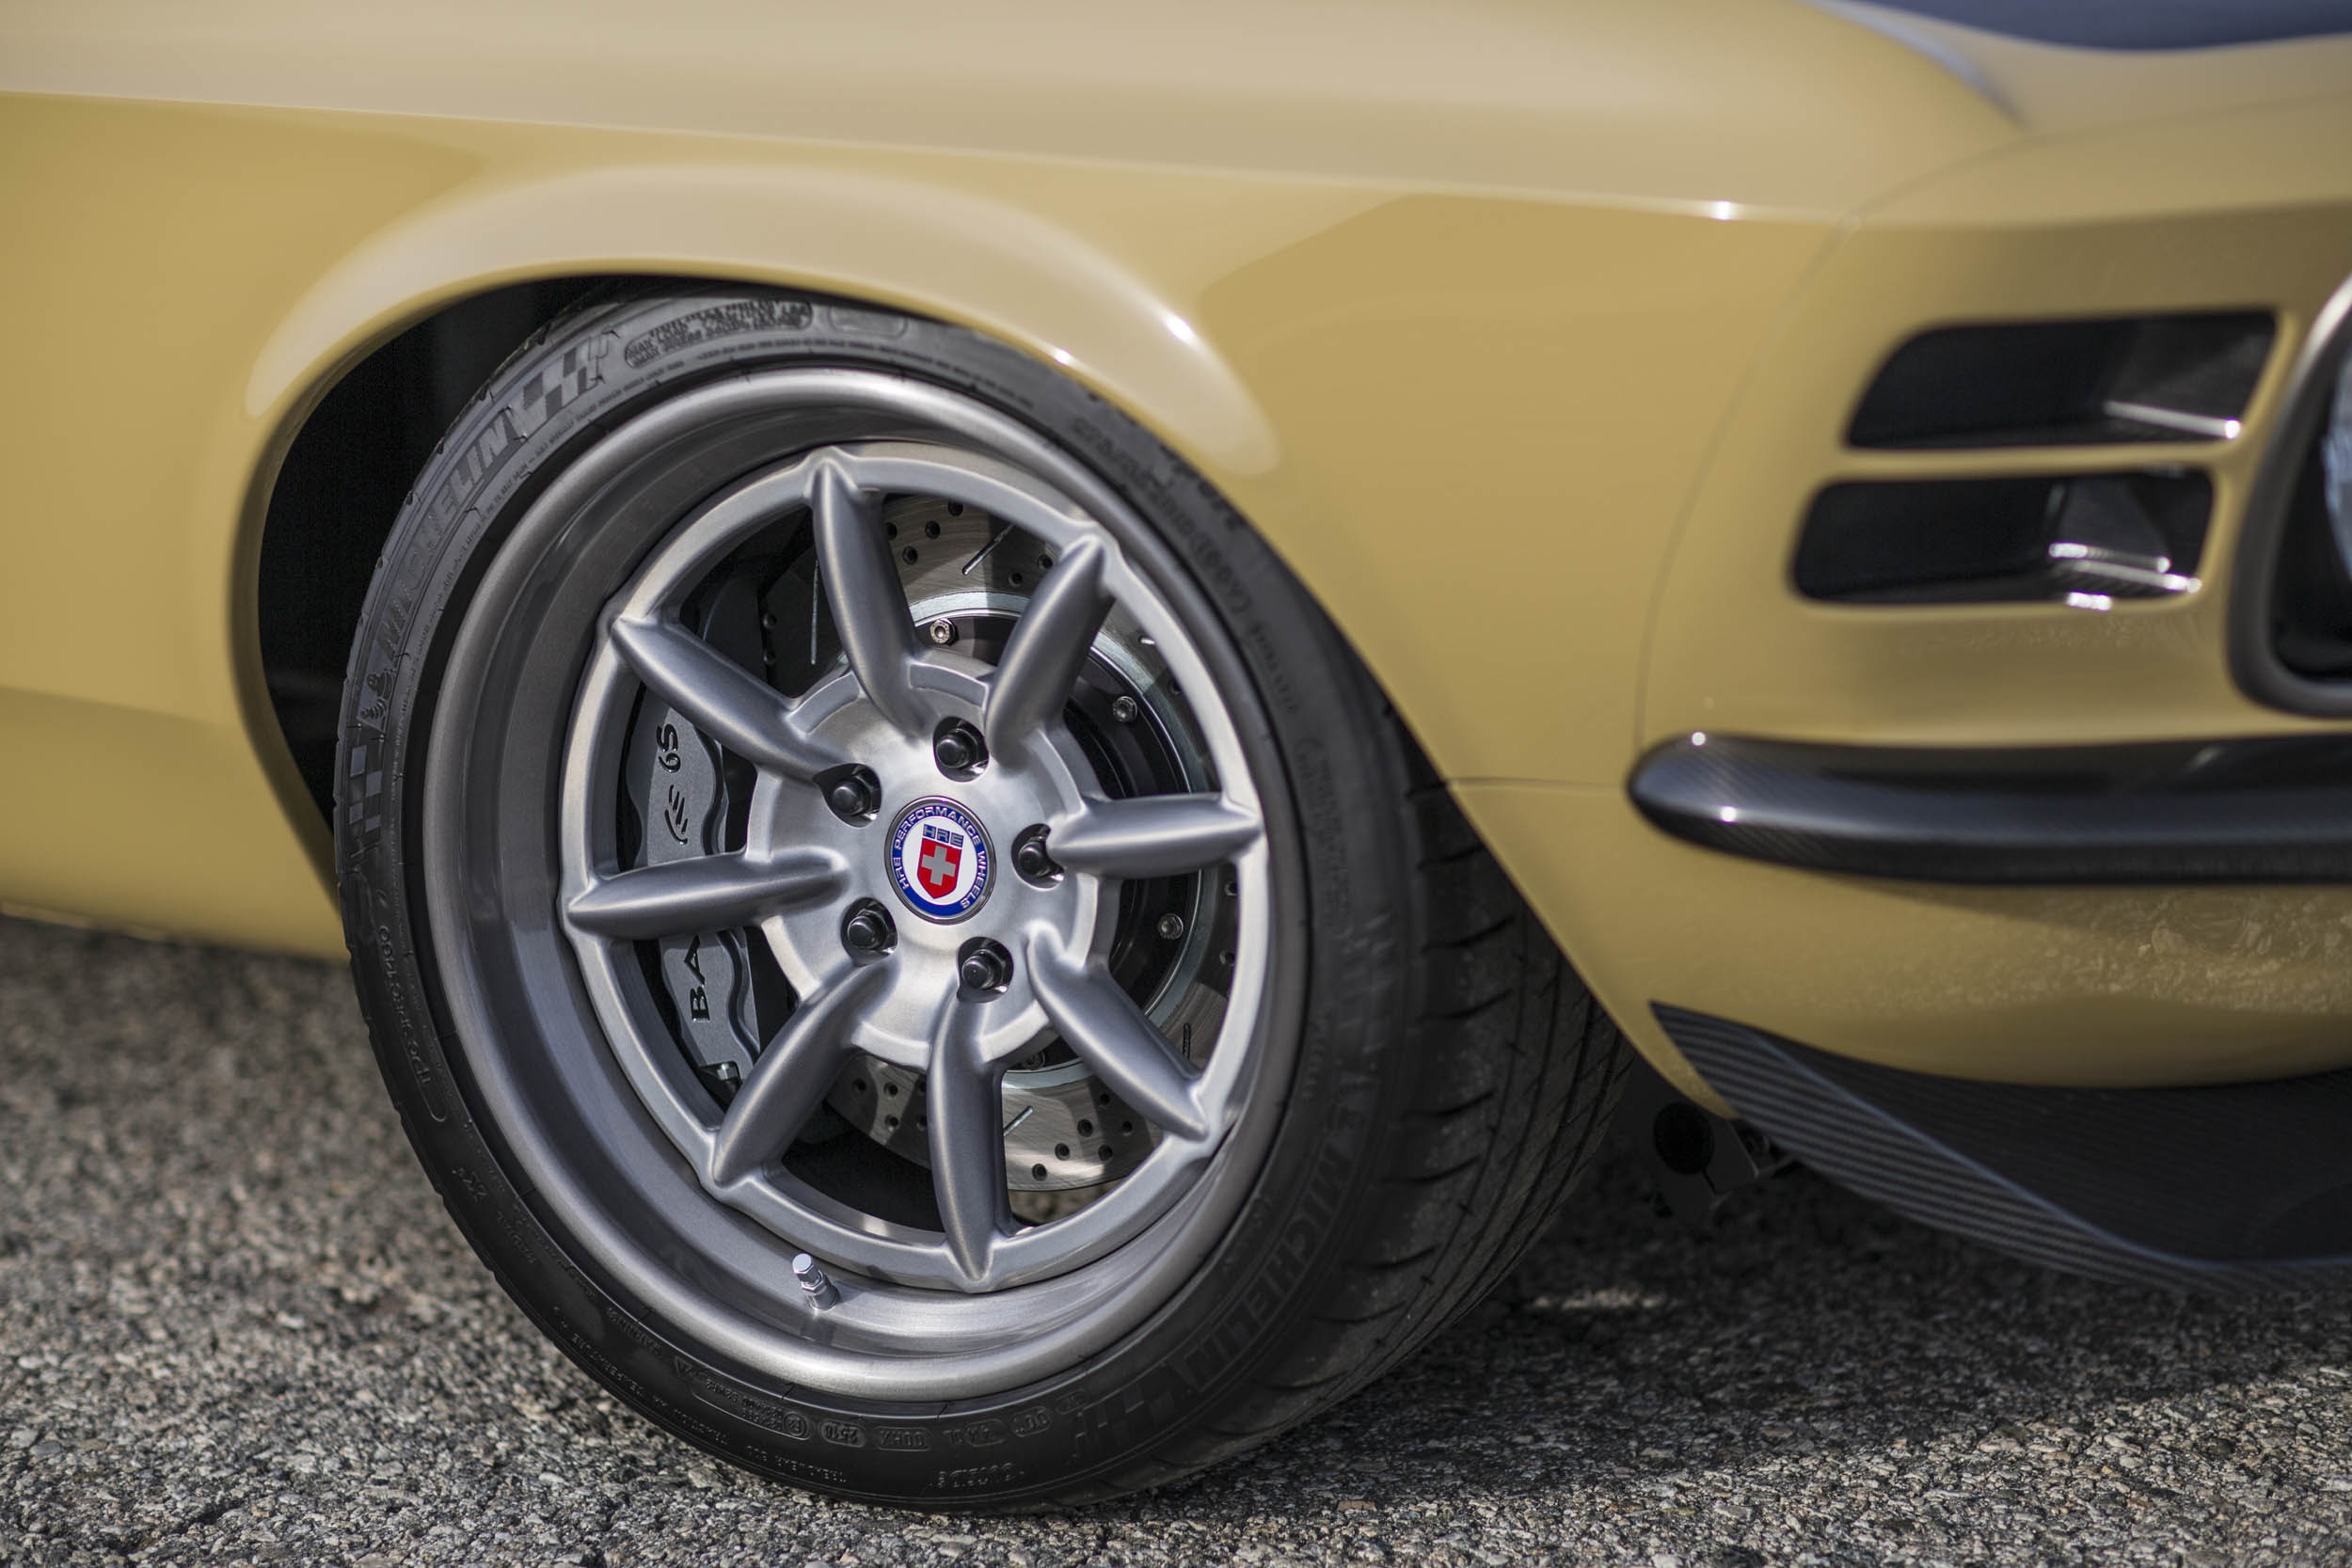 A custom set of HRE wheels are inspired by classic Minilites. Behind them are Baer brakes and a Detroit Speed front suspension.